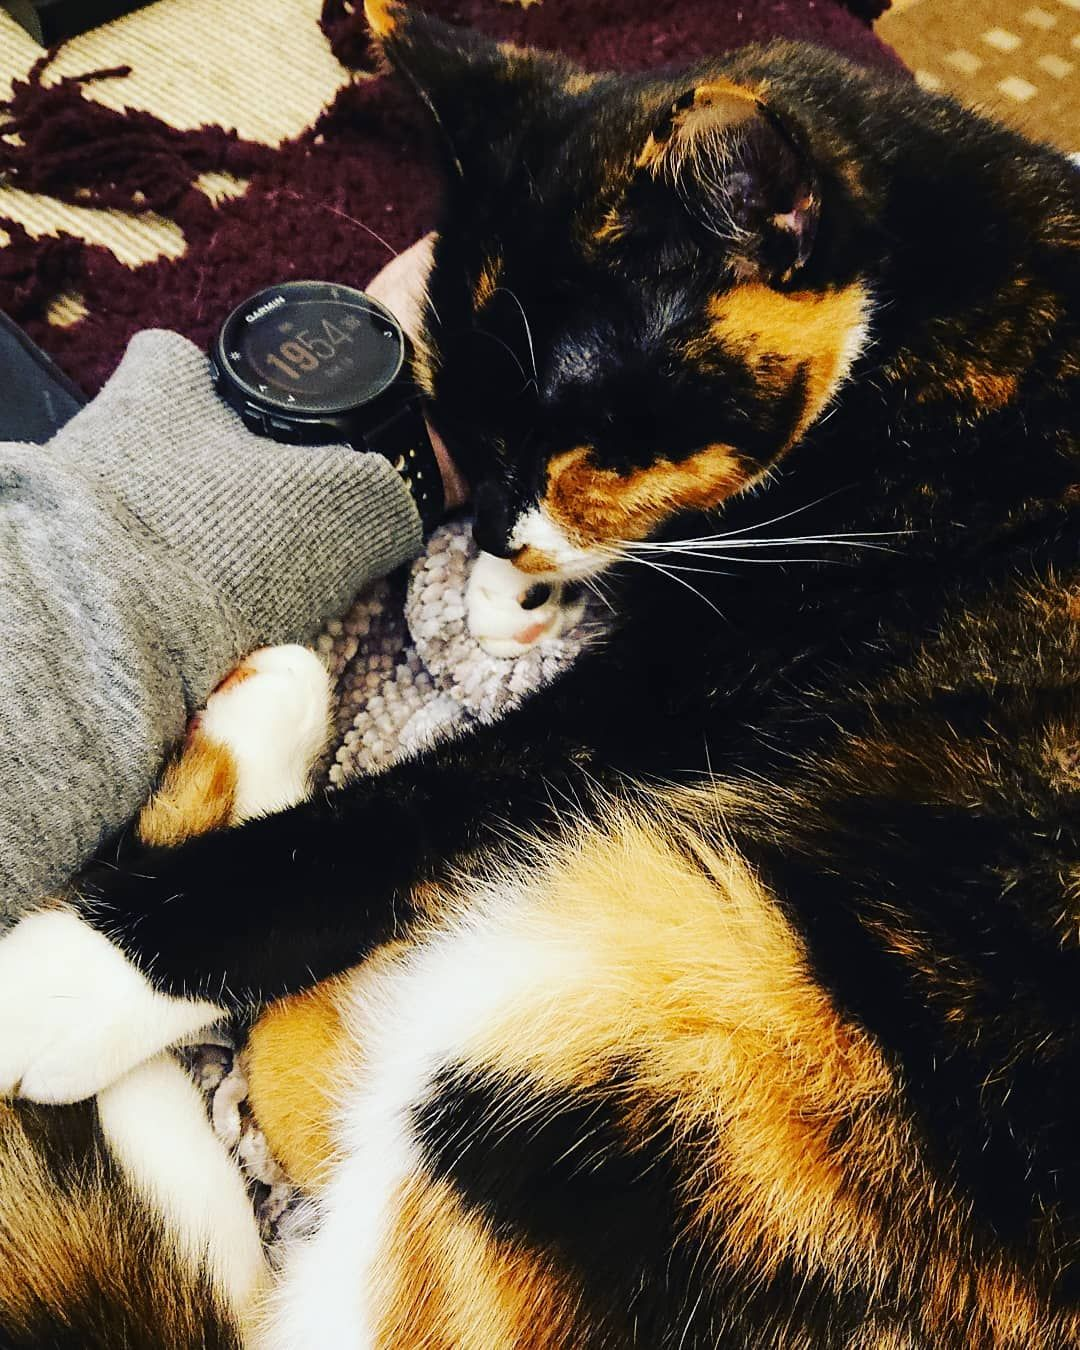 It S Another Crazy Saturday Night Cats Catsofinstagram Instacats Calicocat Tortoiseshell Indy Cat Day Cats Of Instagram Calico Cat